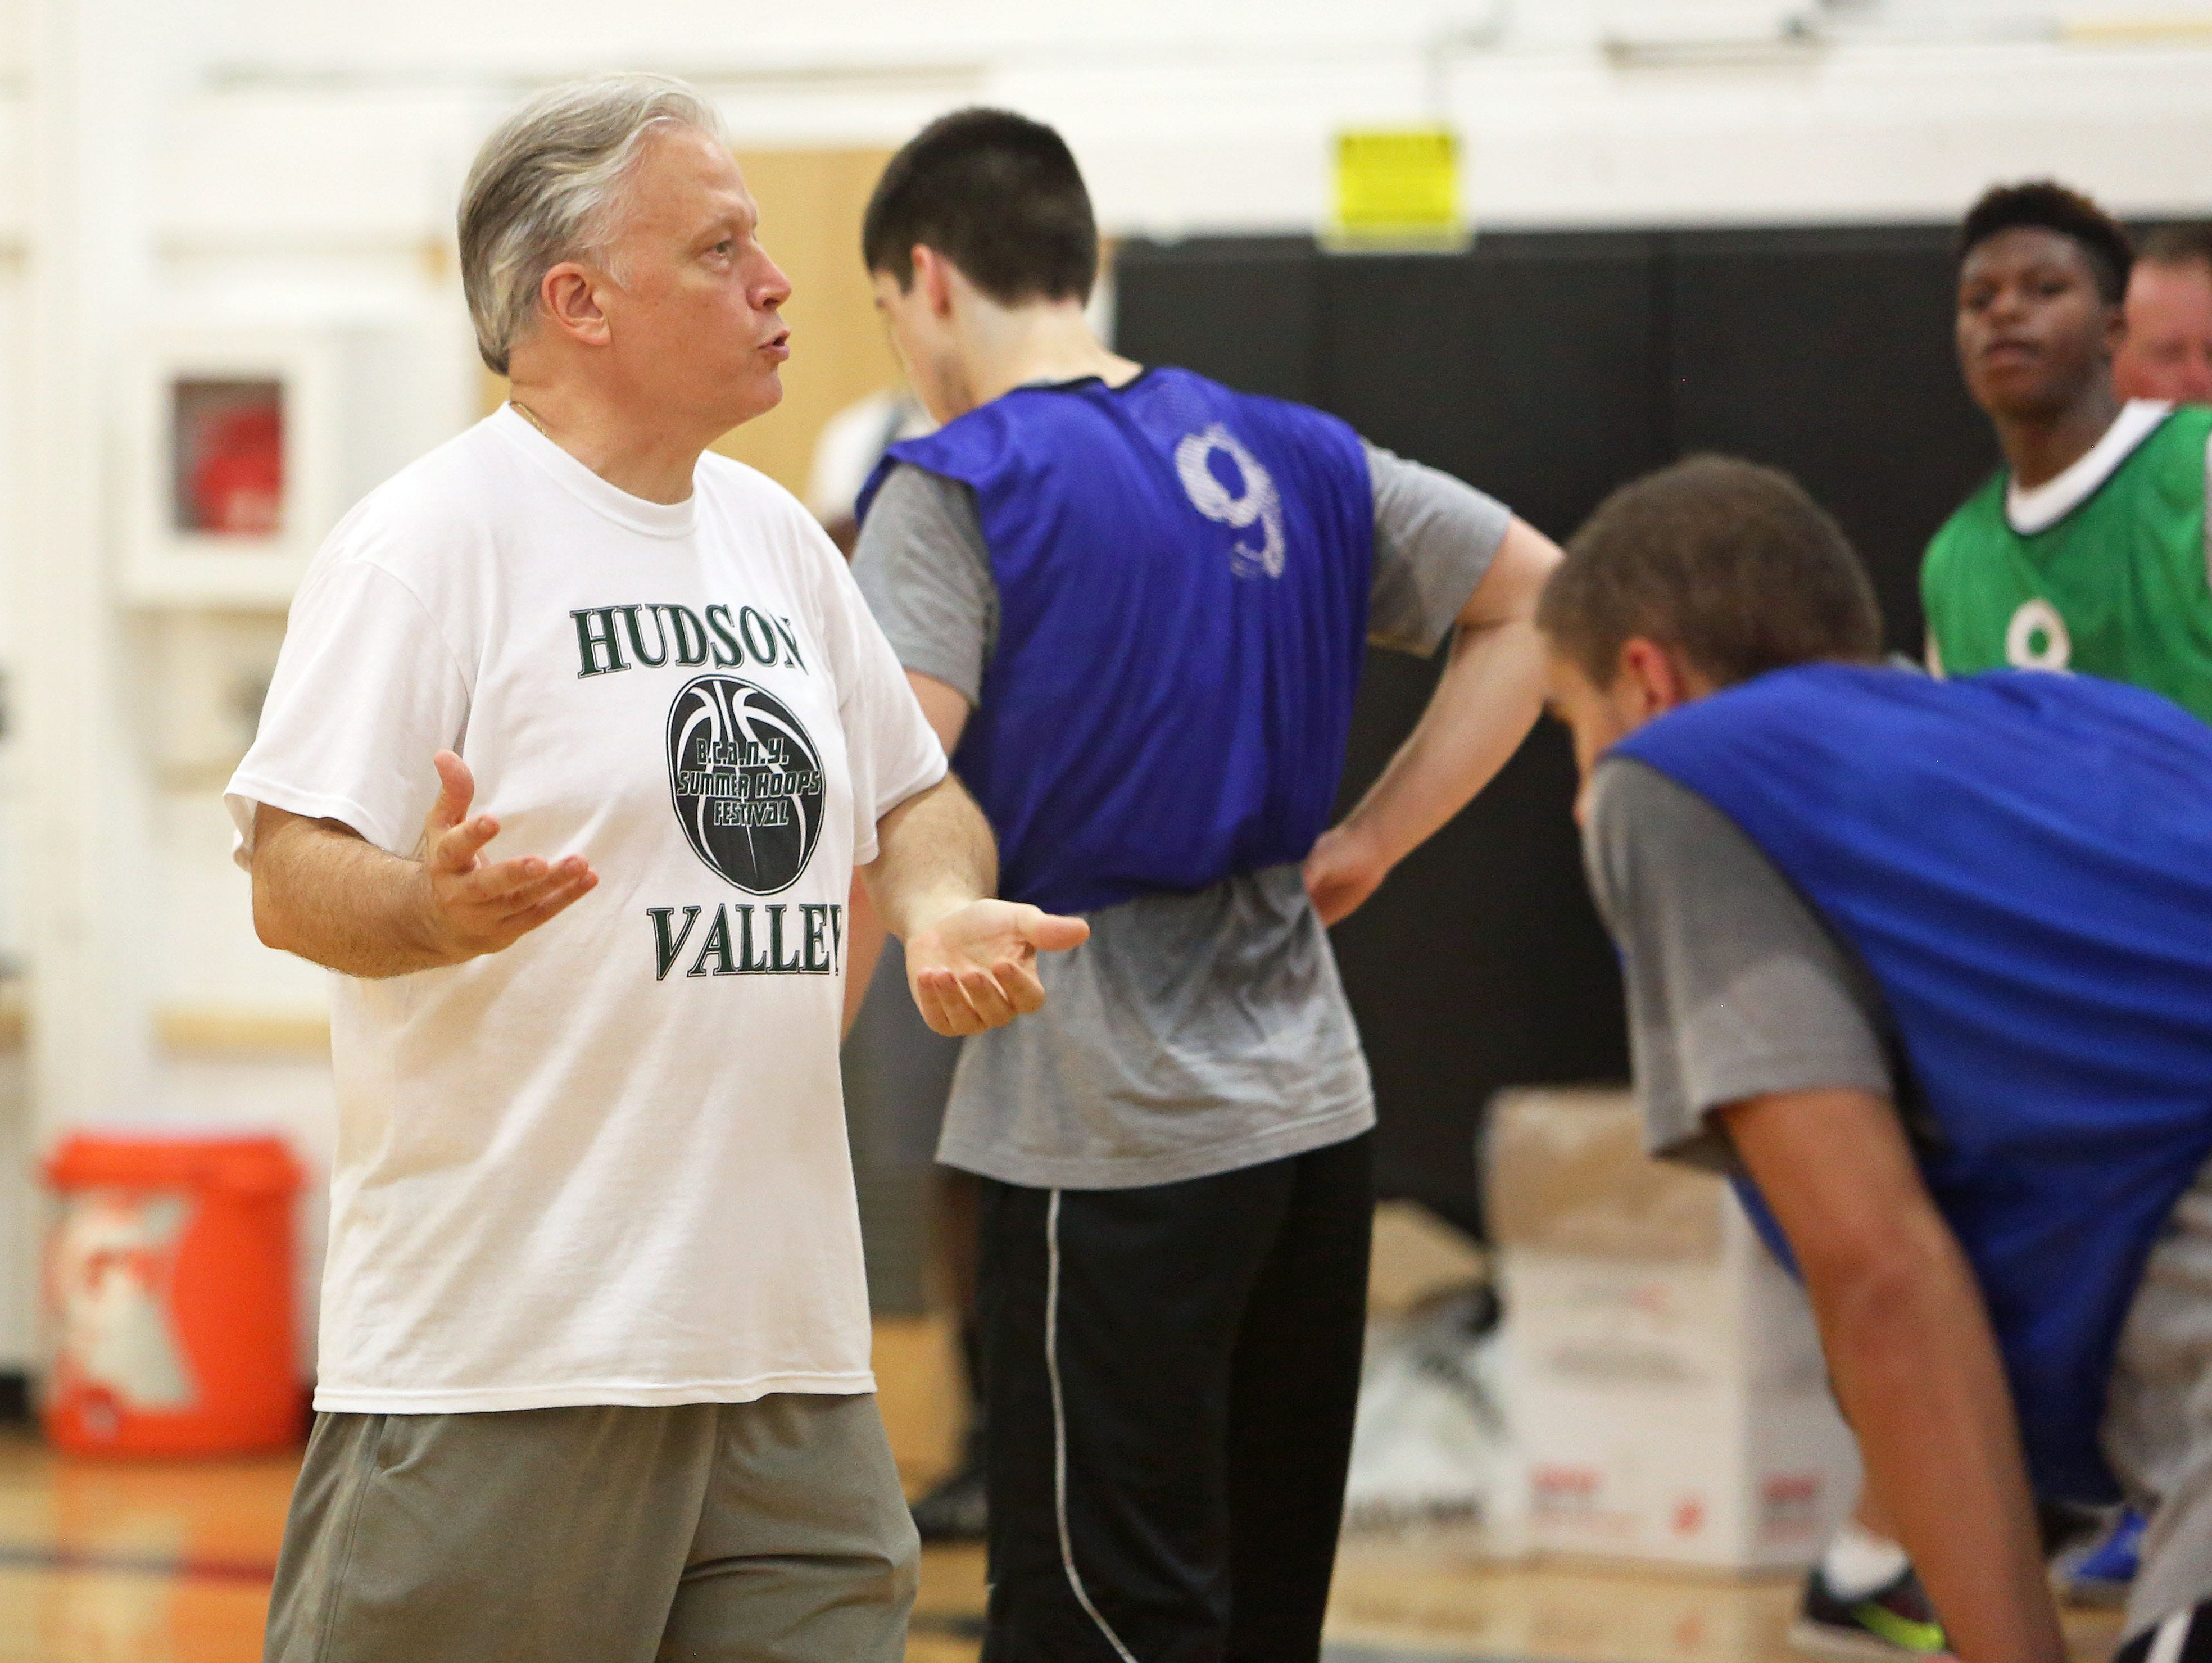 Coach Bill Thom conducts practice with the Hudson Valley team at Croton High School July 29, 2015. The team is preparing for the BCANY Summer Hoops Festival.